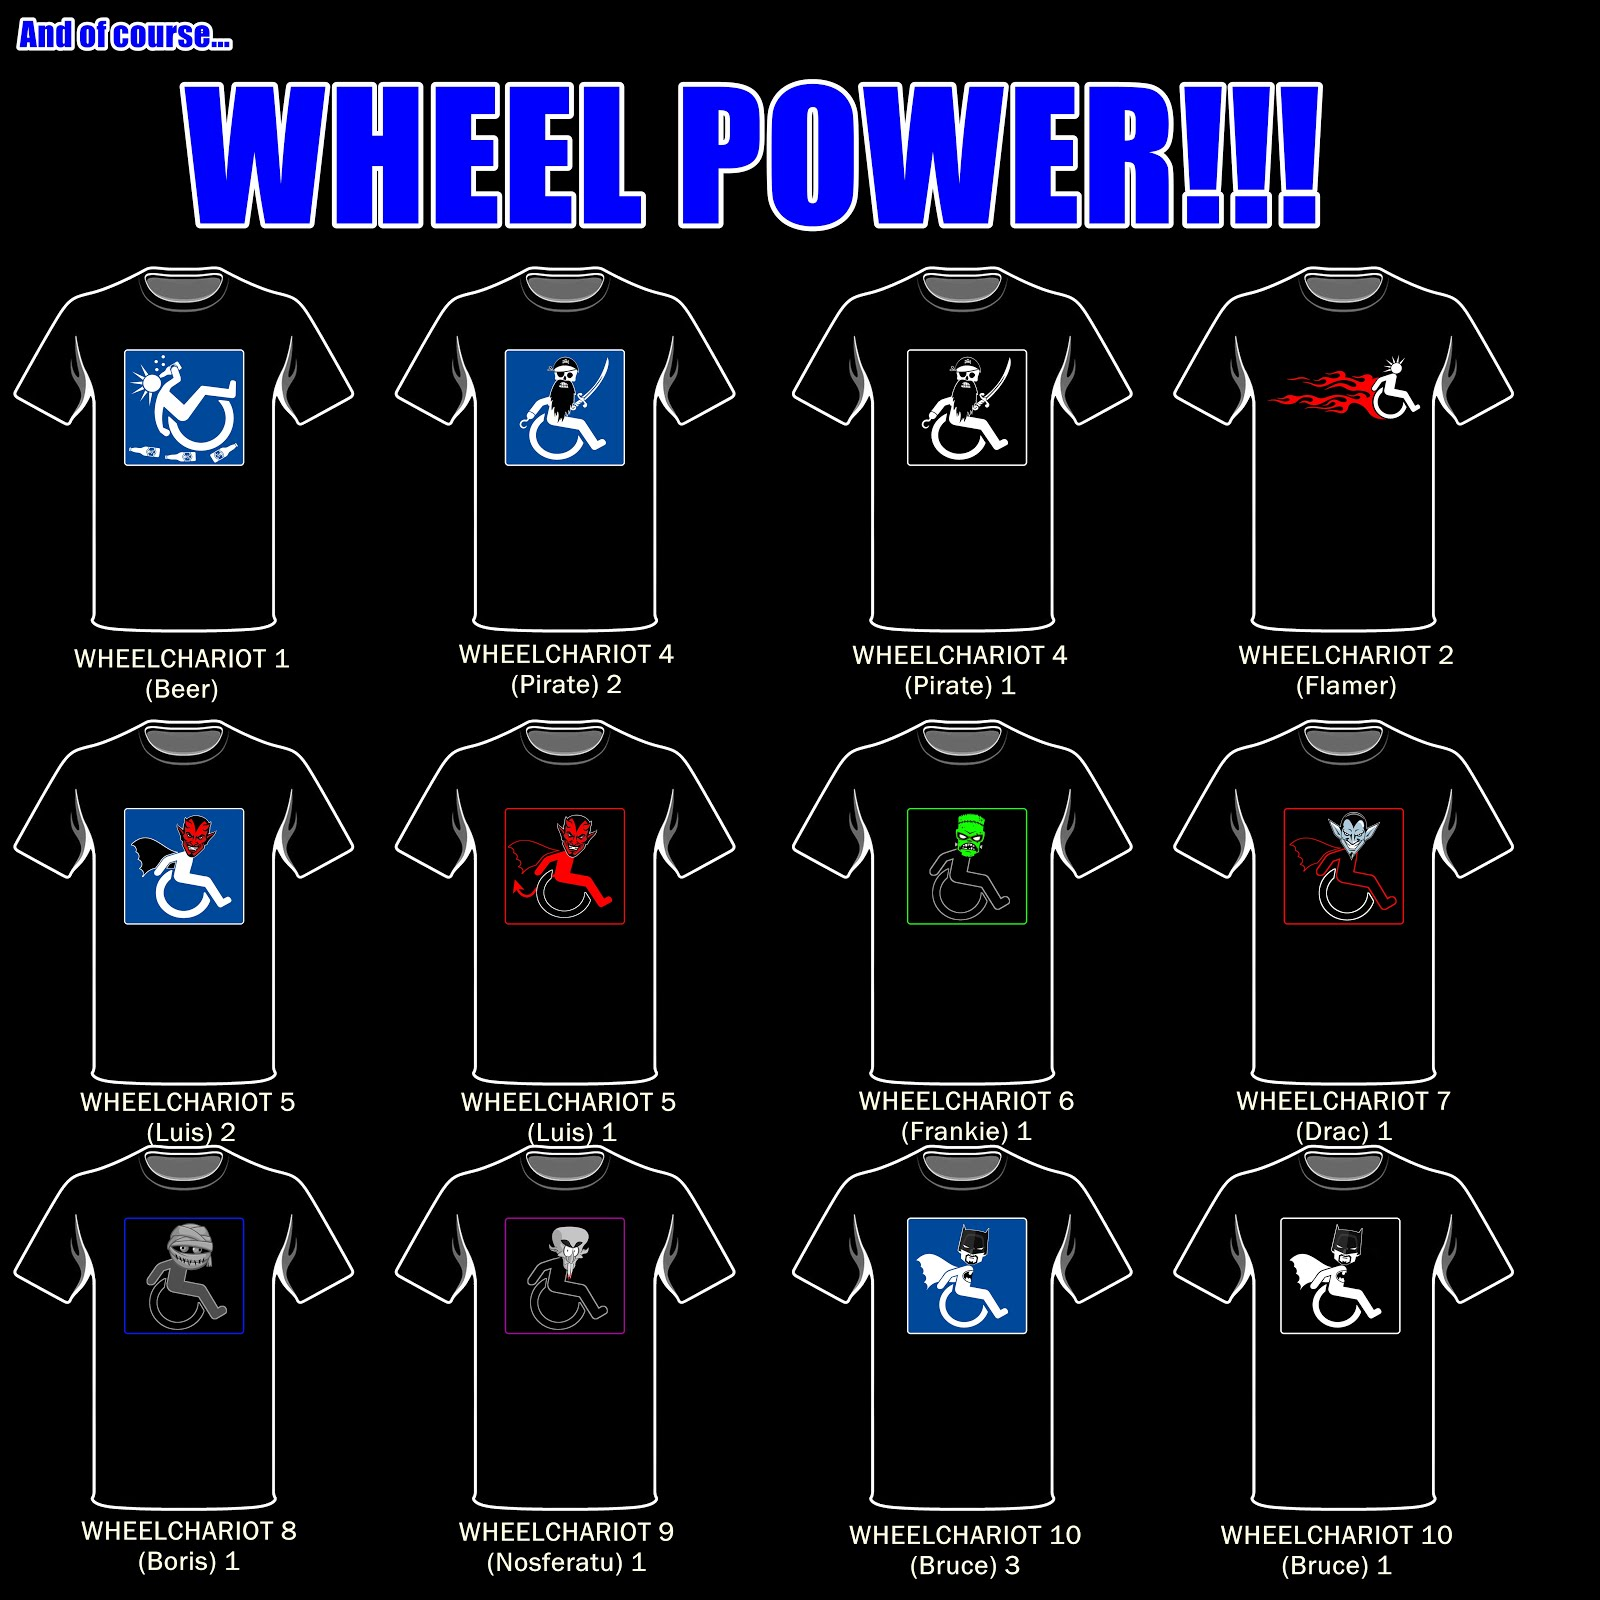 Wheel POWER 1